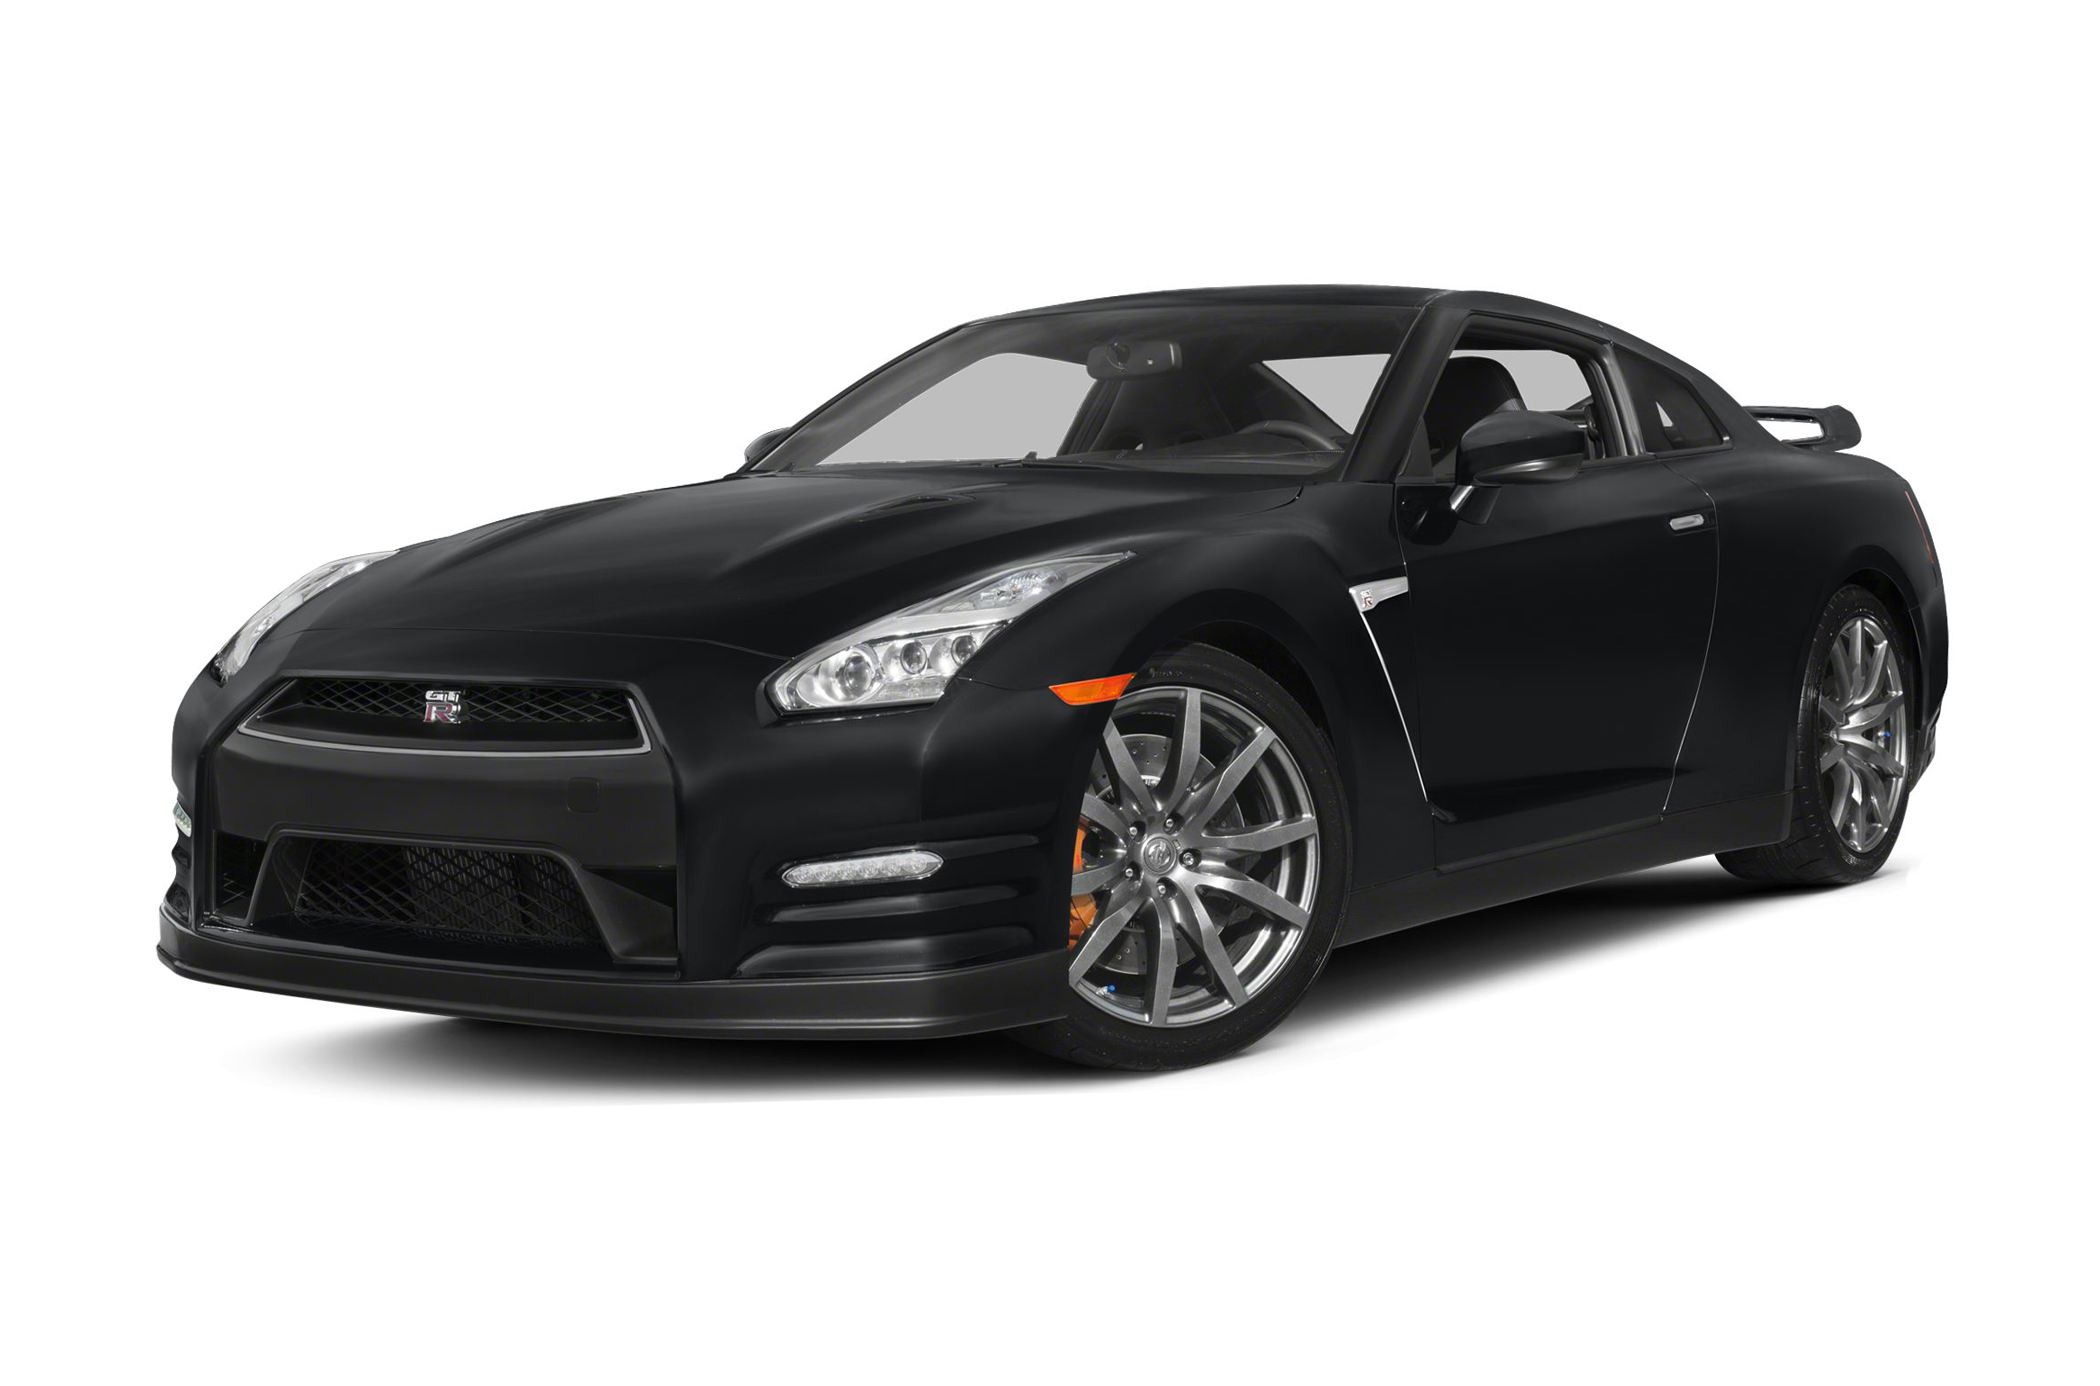 Nissan Gt R 2018 Prices In Pakistan Pictures And Reviews